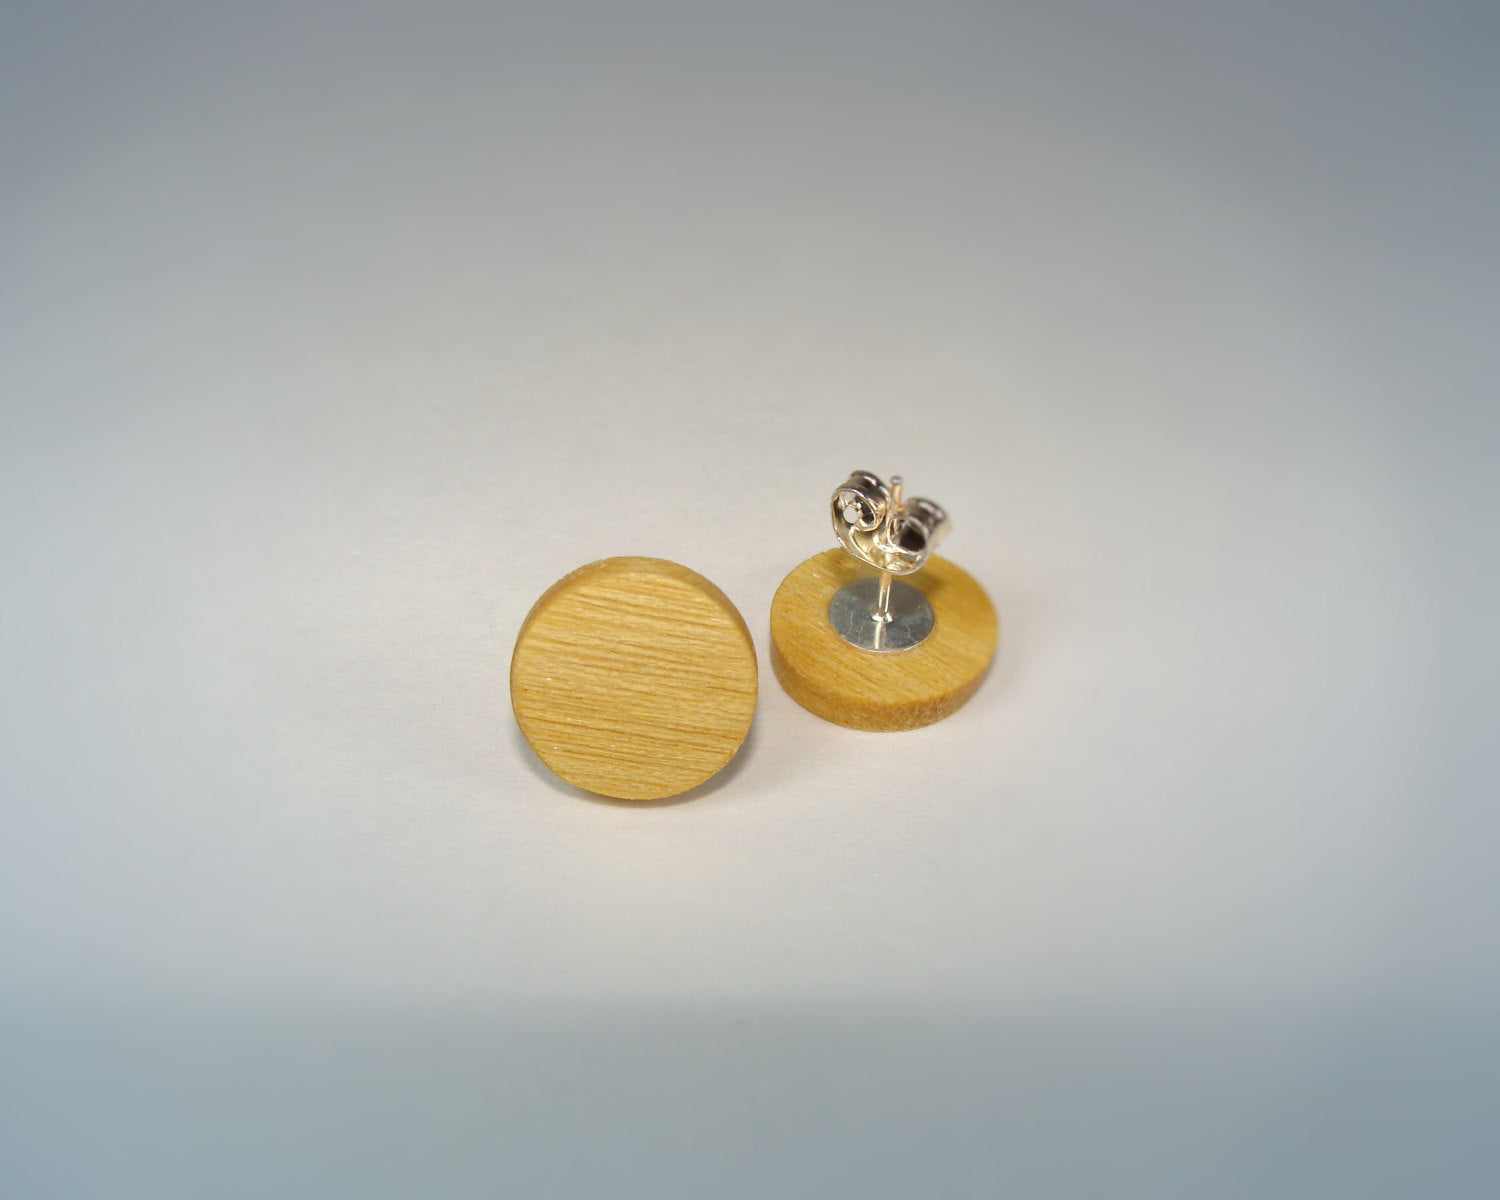 Yellowheart Wood Earrings - Stud or Dangle - Multiple Sizes - Art and Soule